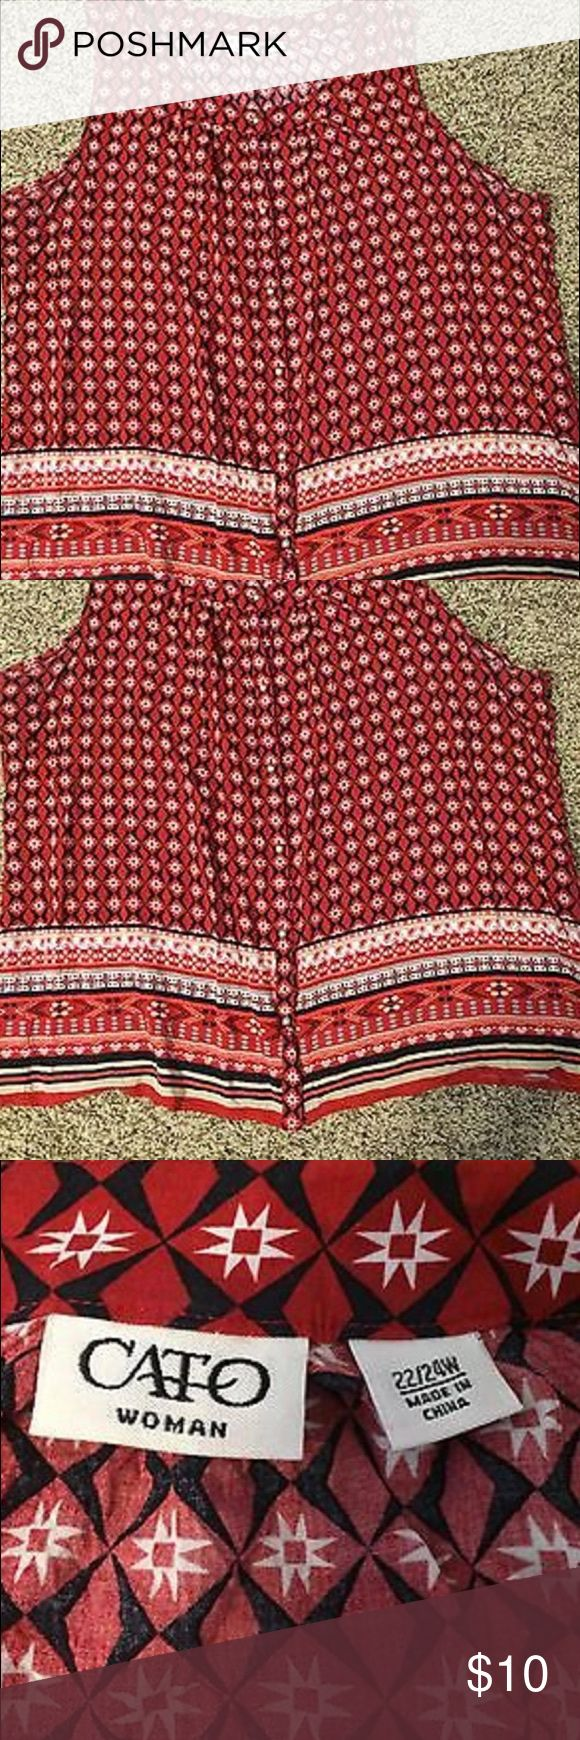 Cato Women's Plus 22/24W Tribal Blouse Tank Cool, flowing blouse buttons up front. Red, white, black, & tan colors. Some fading underneath arms (pictured). Cato Tops Blouses